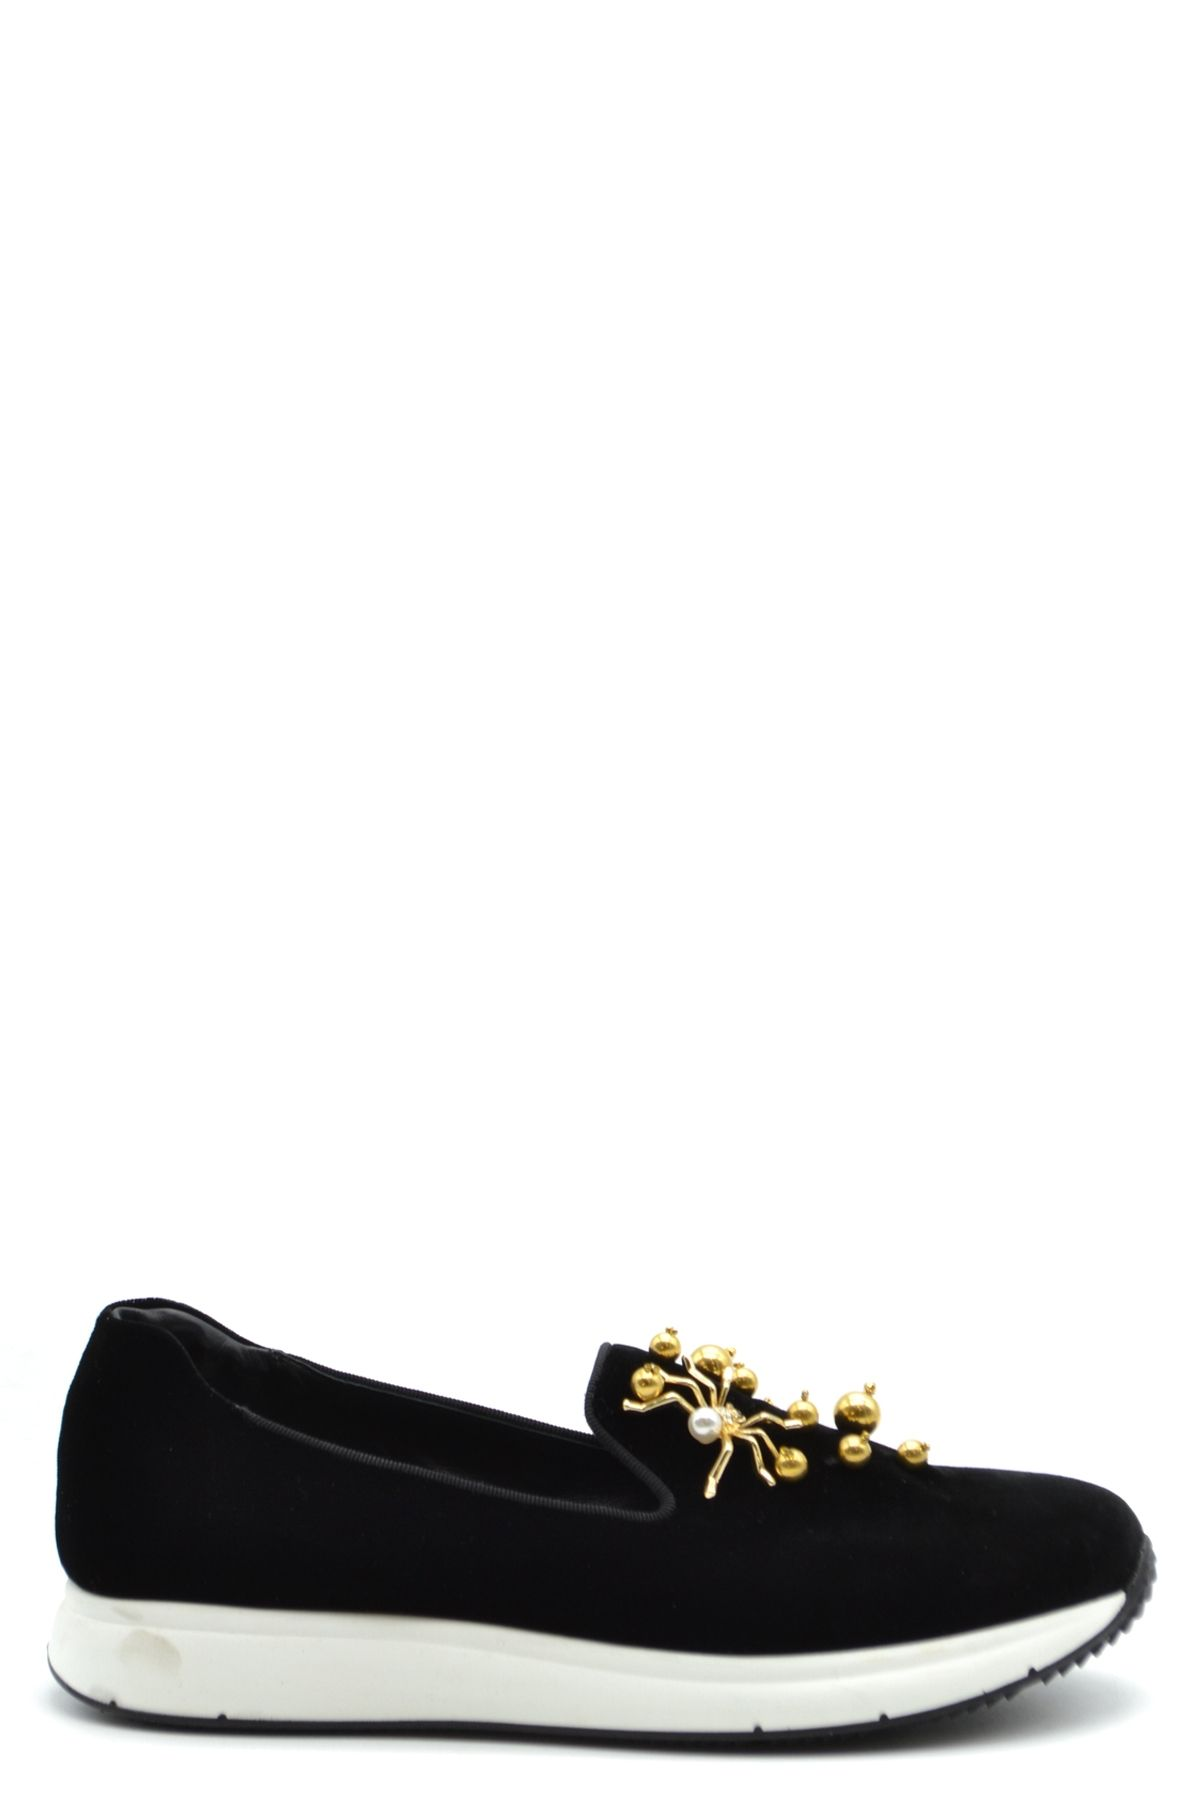 Car Shoe BLACK VELVET LOAFERS